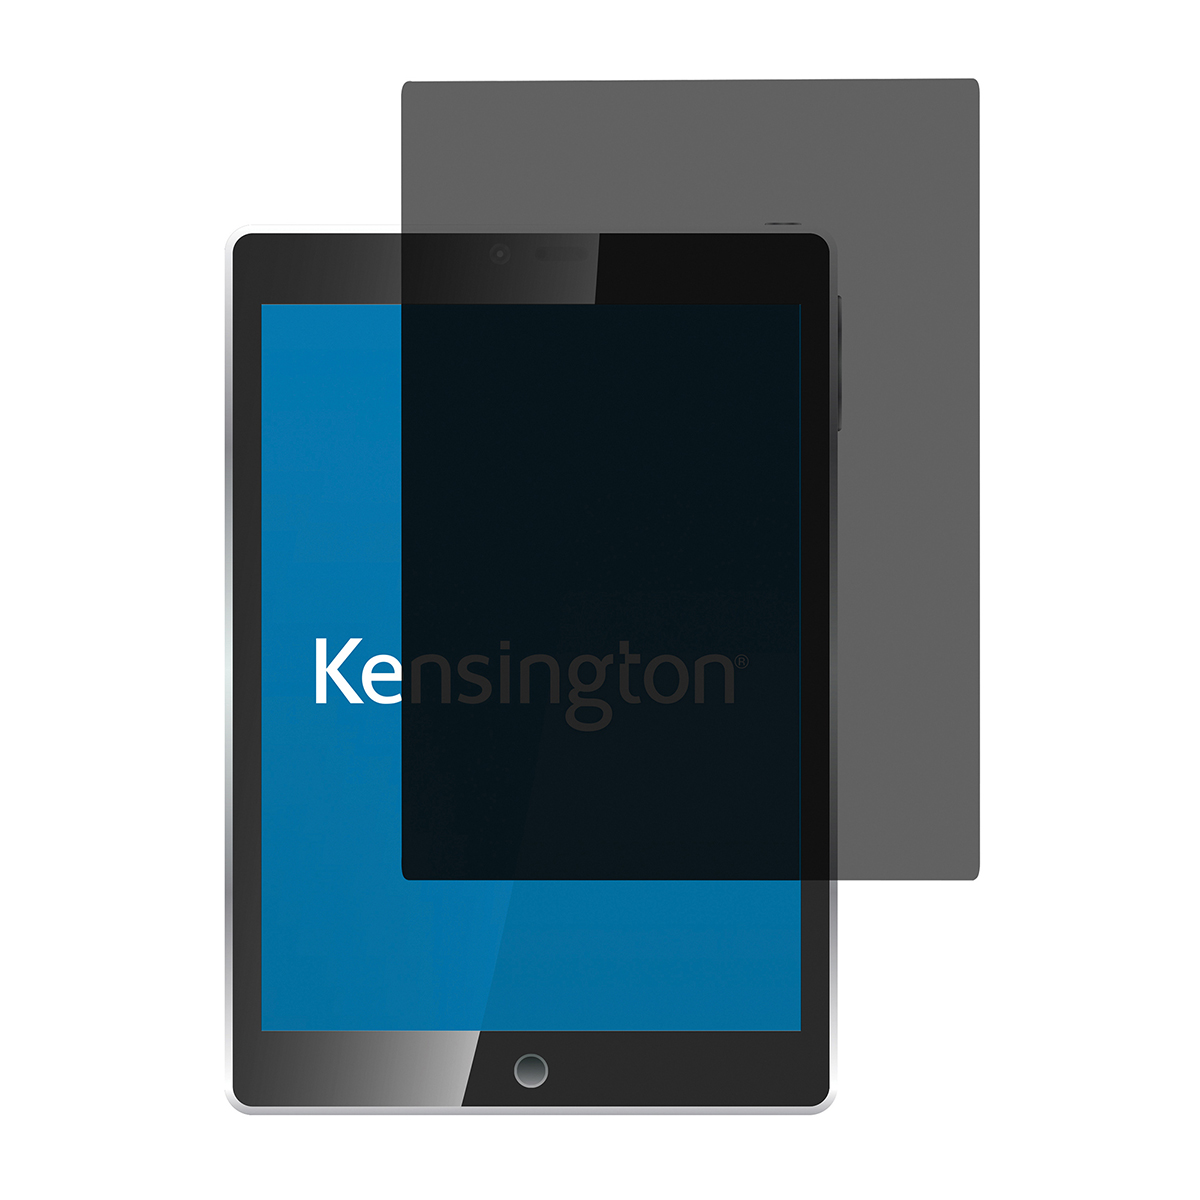 Kensington 626399 Privacy Filter 4 Way Adhesive for iPad Pro 10.5 Inch